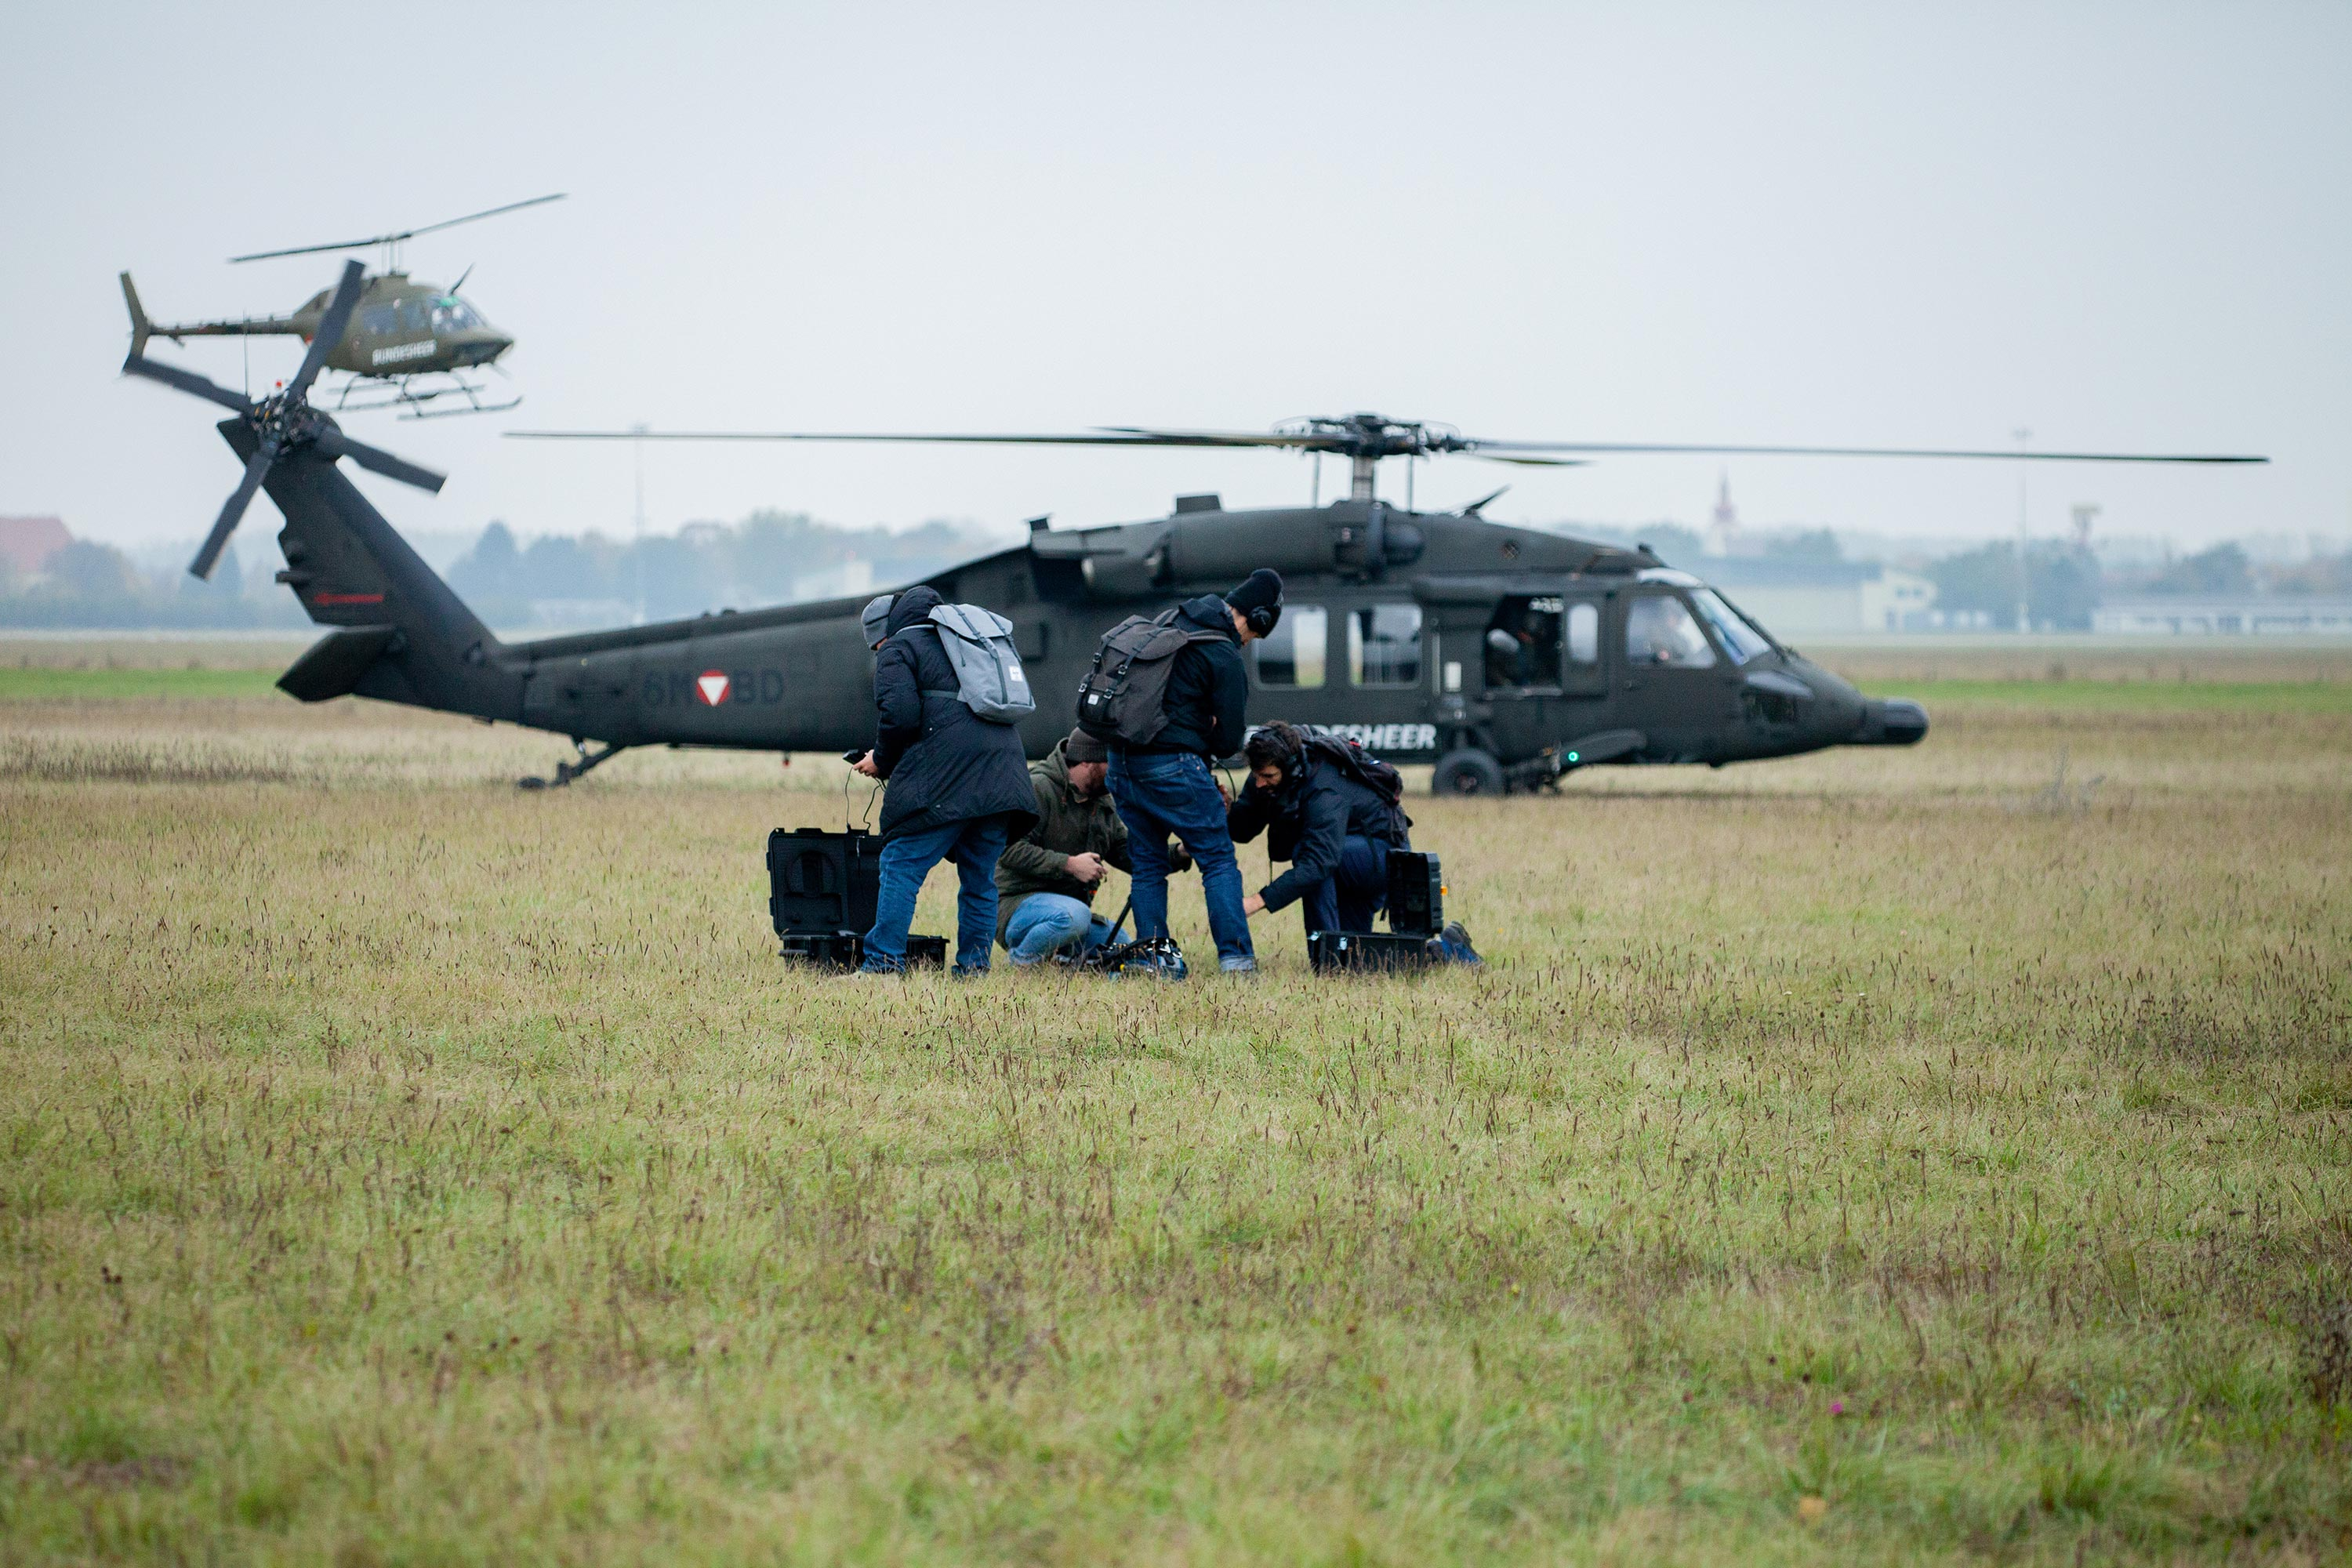 Our film crew in front of two Black Hawk helicopters during a 360 video production